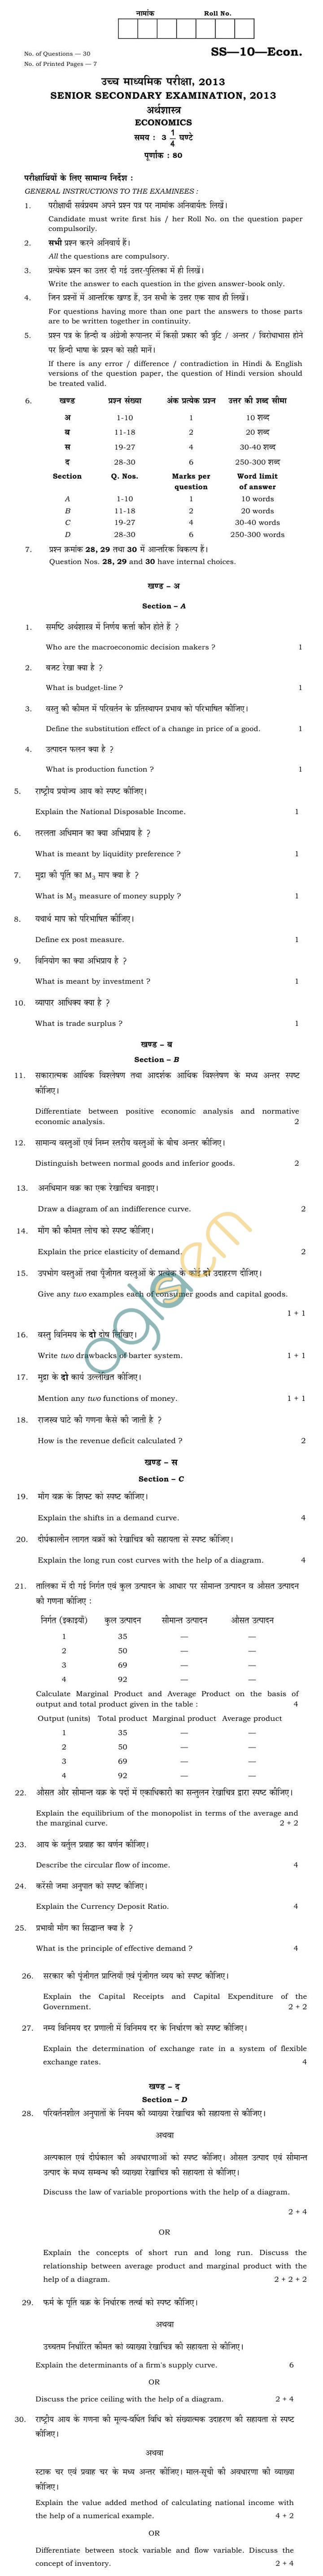 Rajasthan Board Sr. Secondary Econ Question Paper 2013